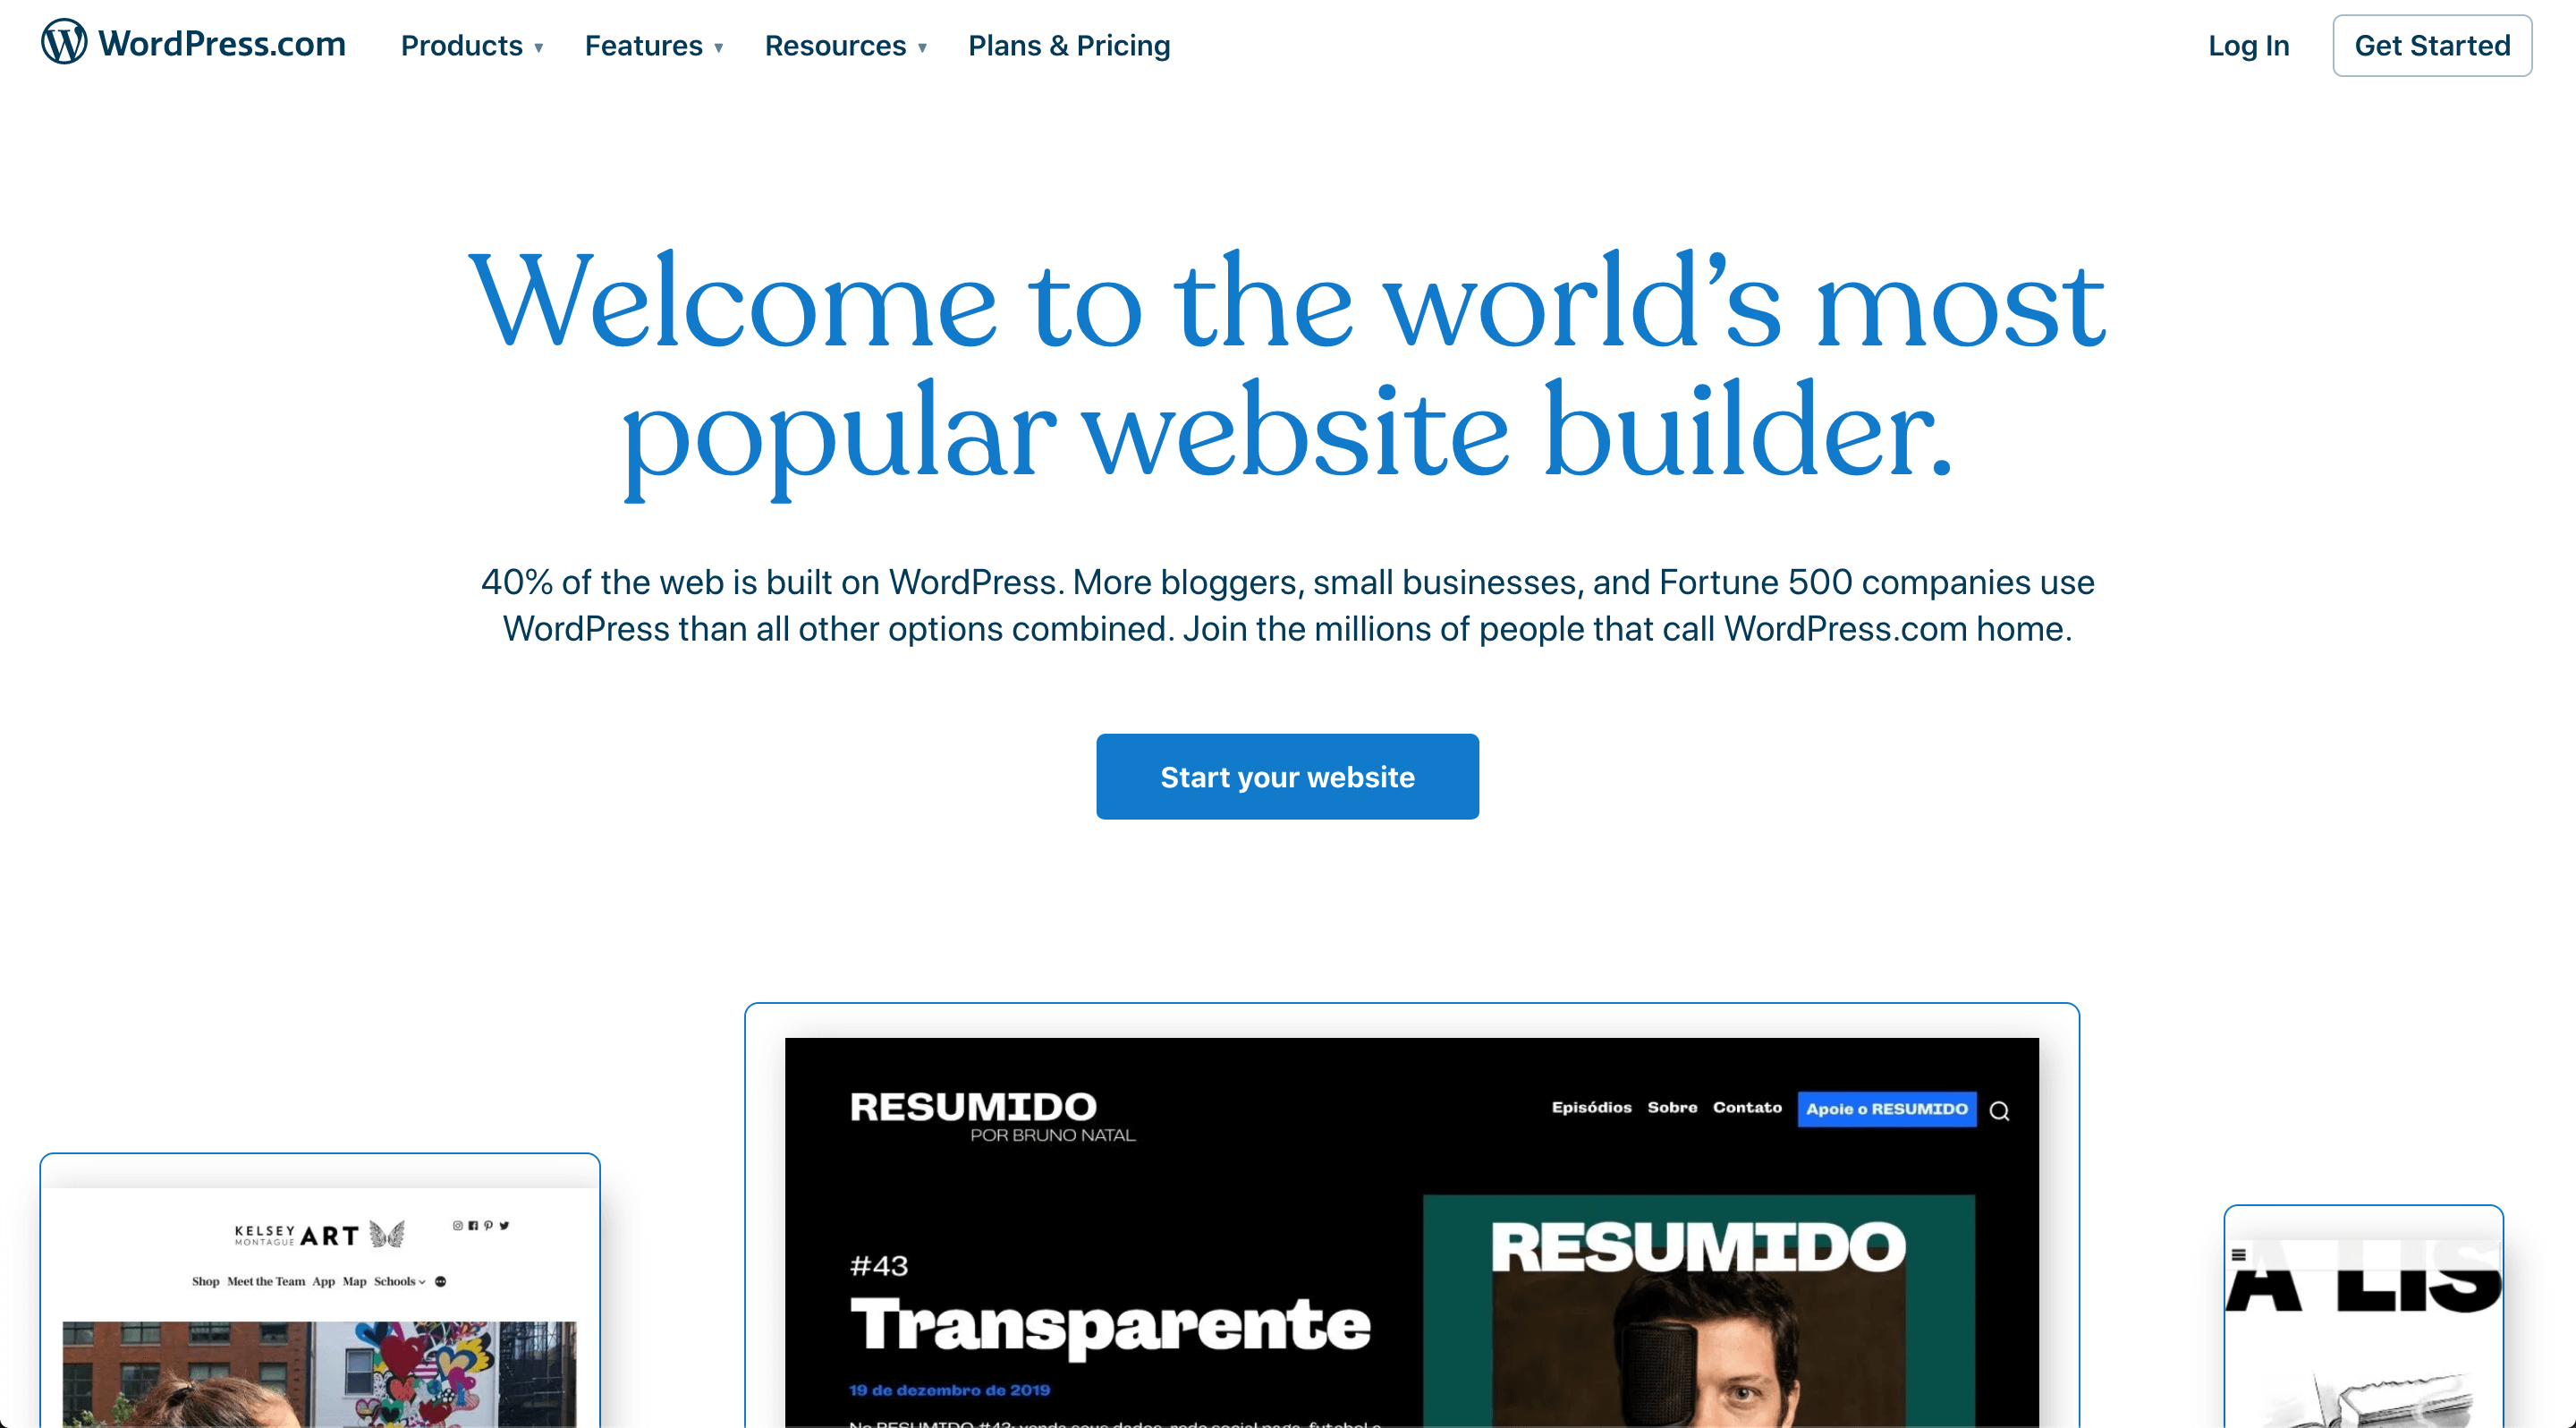 WordPress's Official Website